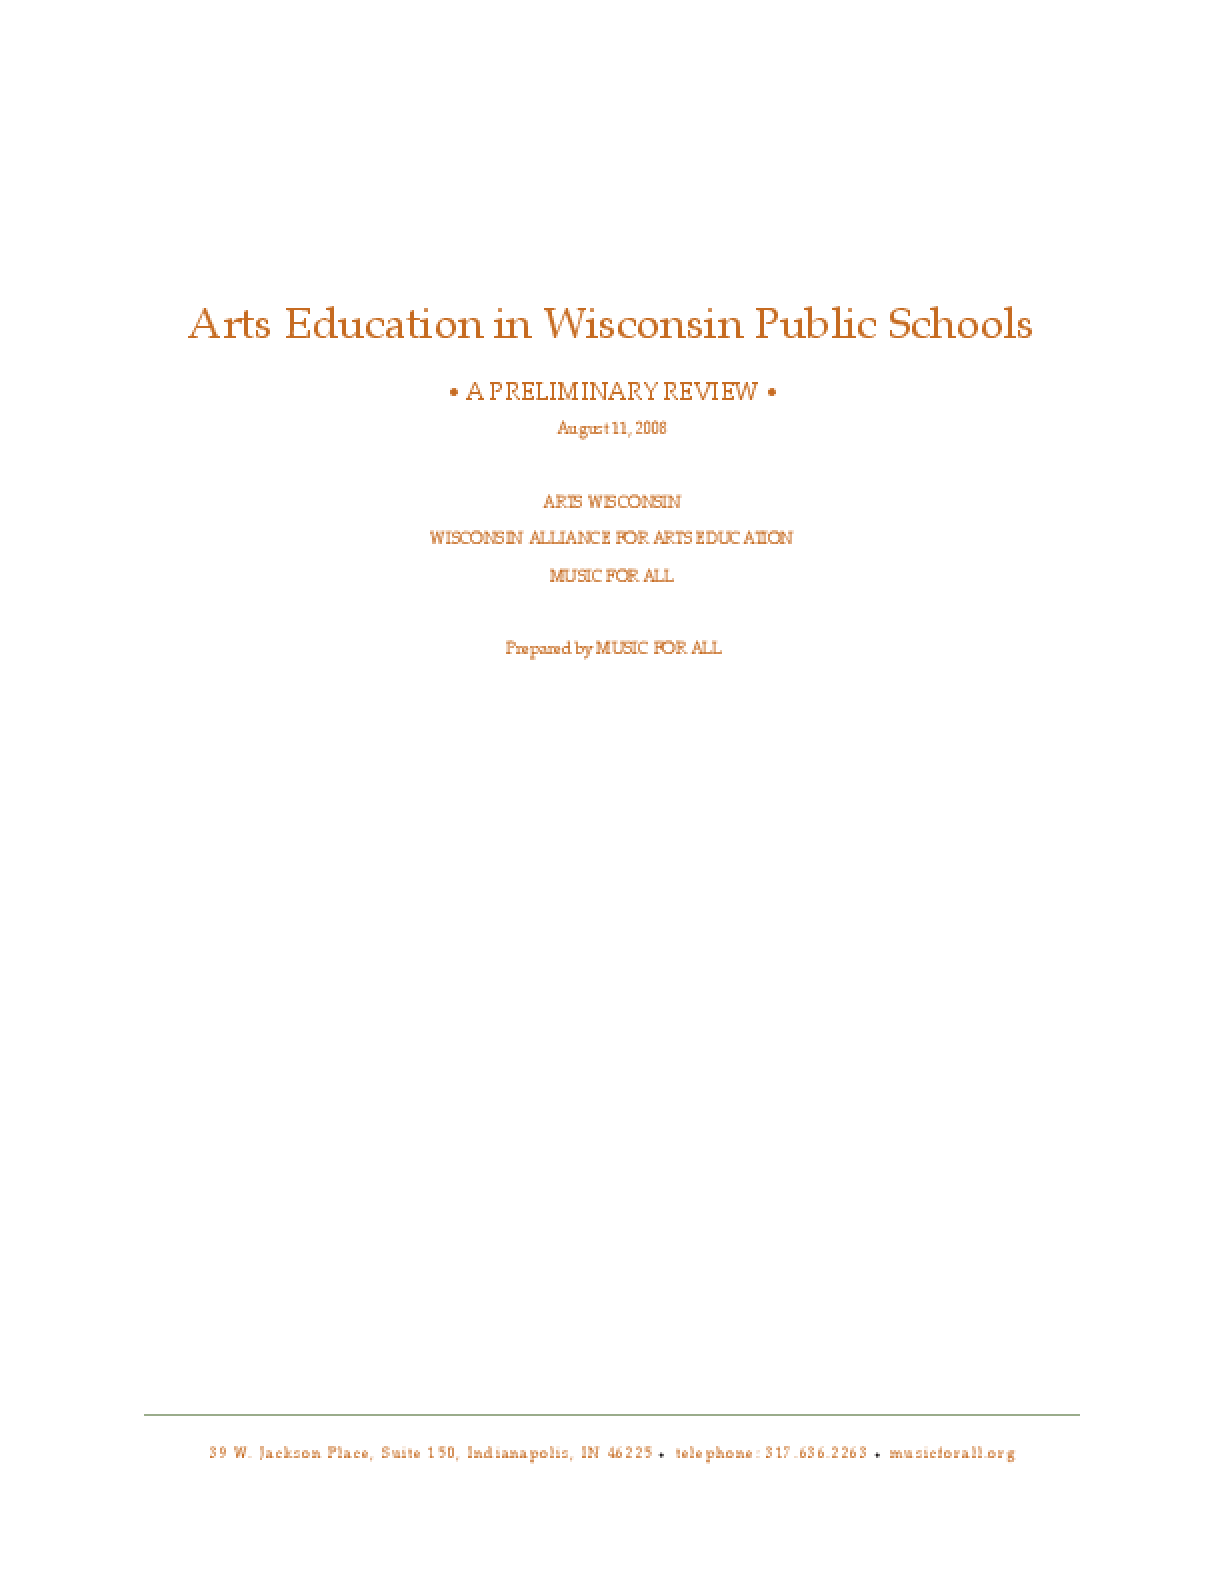 Arts Education in Wisconsin Public Schools: A Preliminary Review